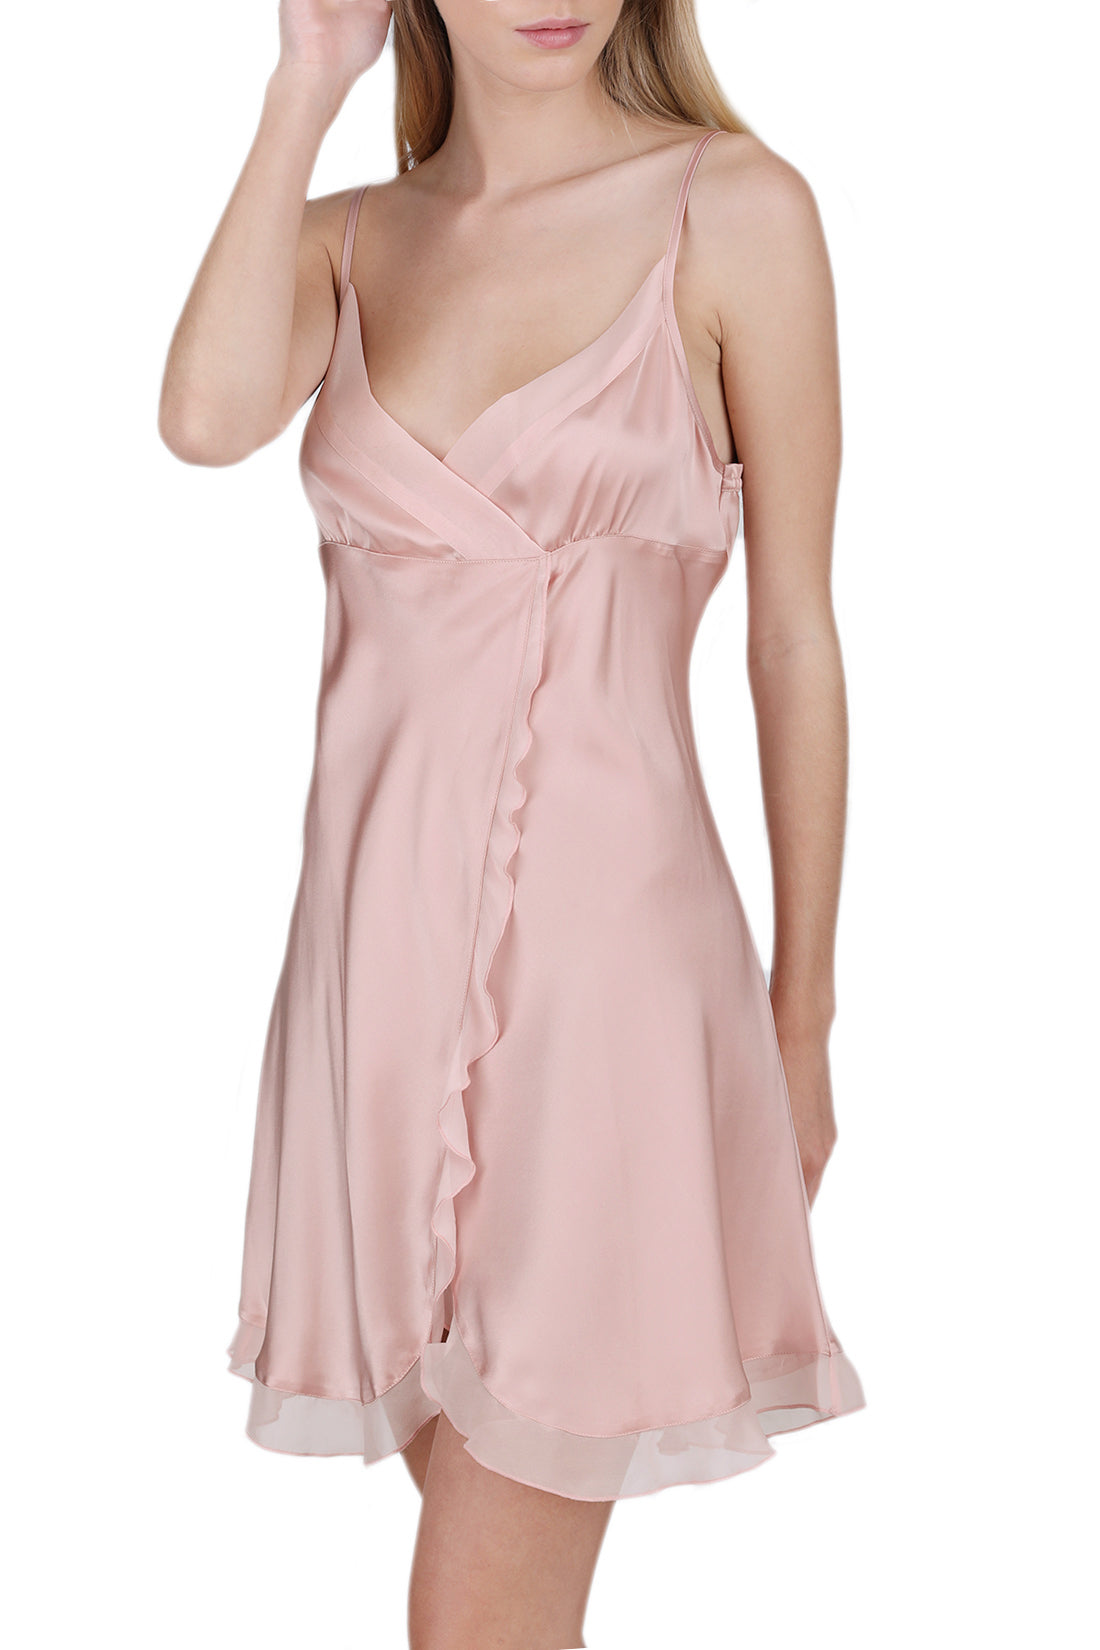 Oscar Rossa Women's 100% Silk Slip Chemise with Sexy Front Slit -